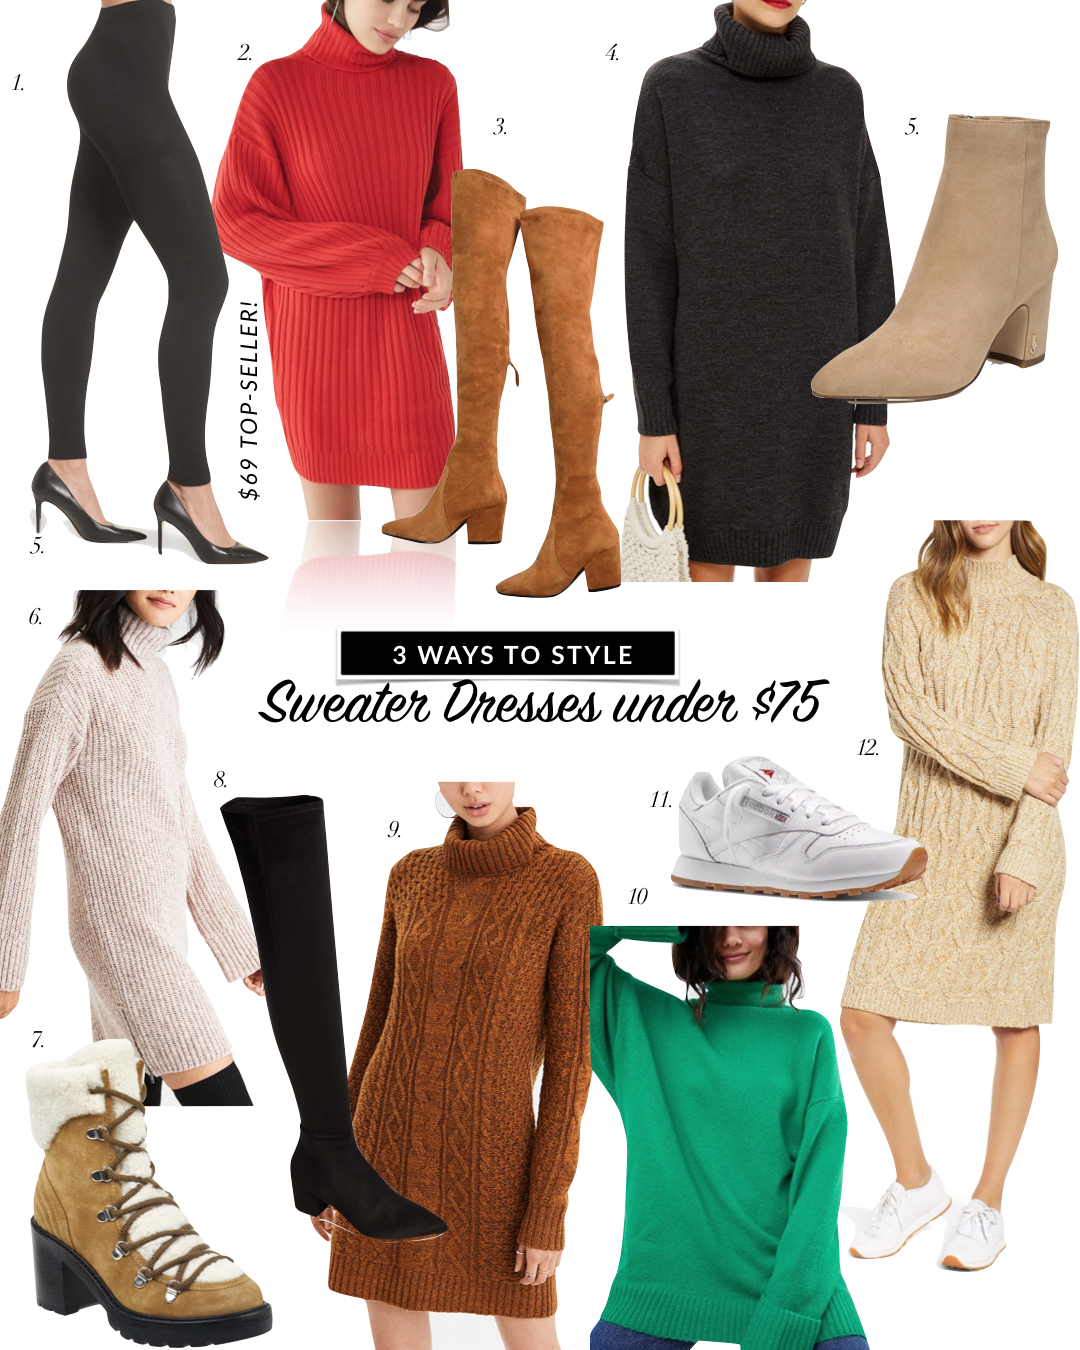 Sweater Dress Outfit Ideas + Favorite Sweater Dress with Boots